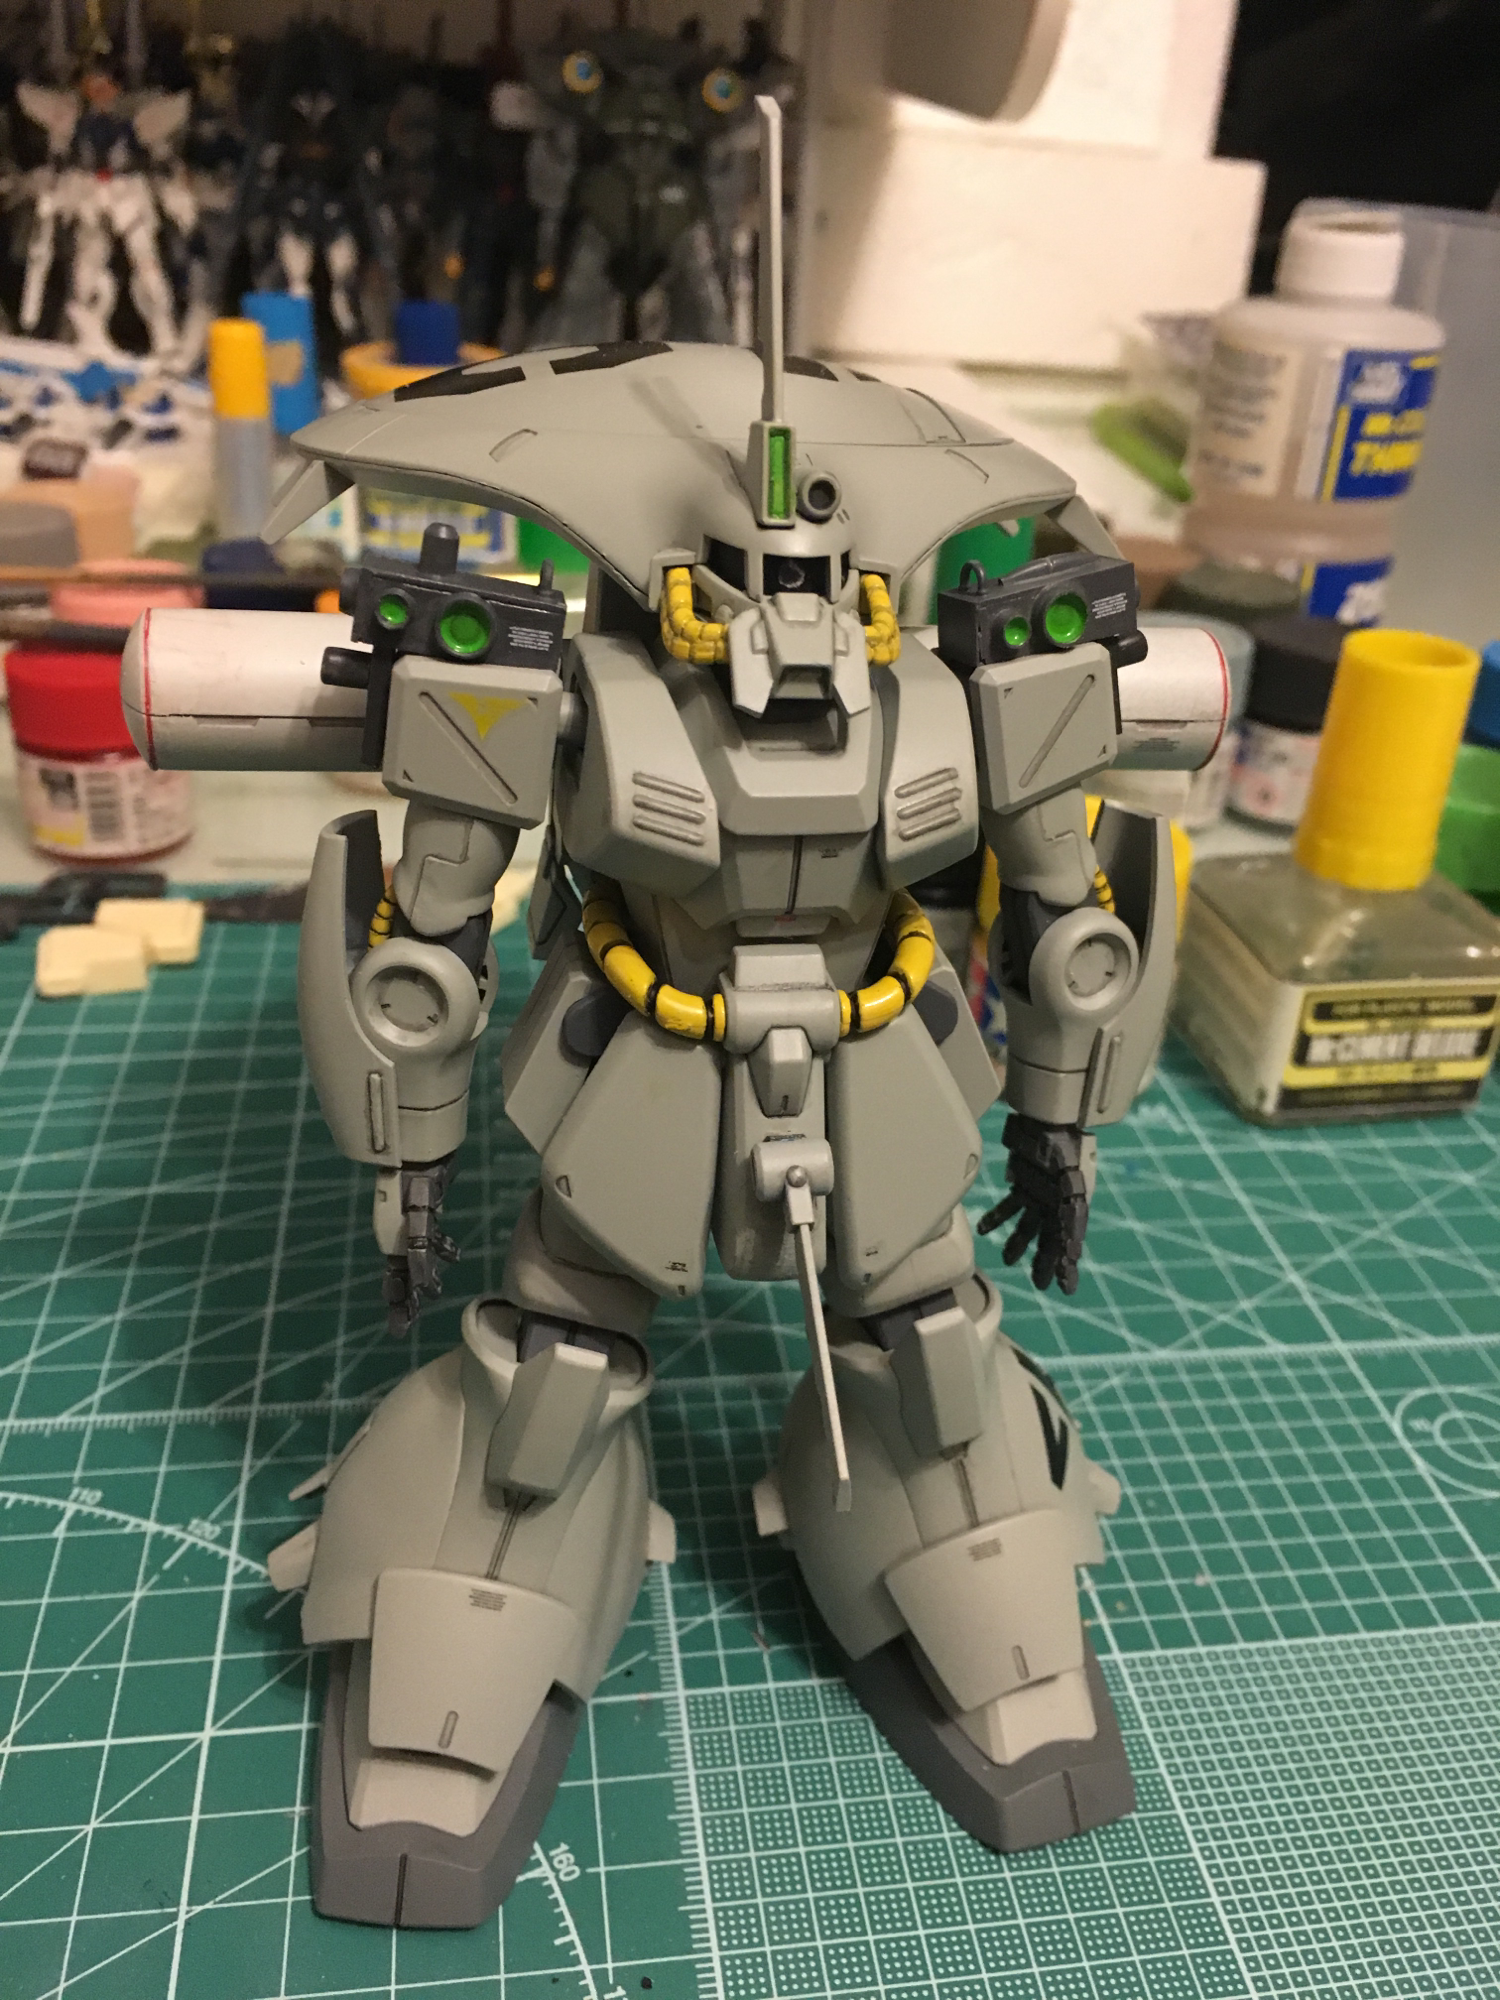 HUGC kitbash project